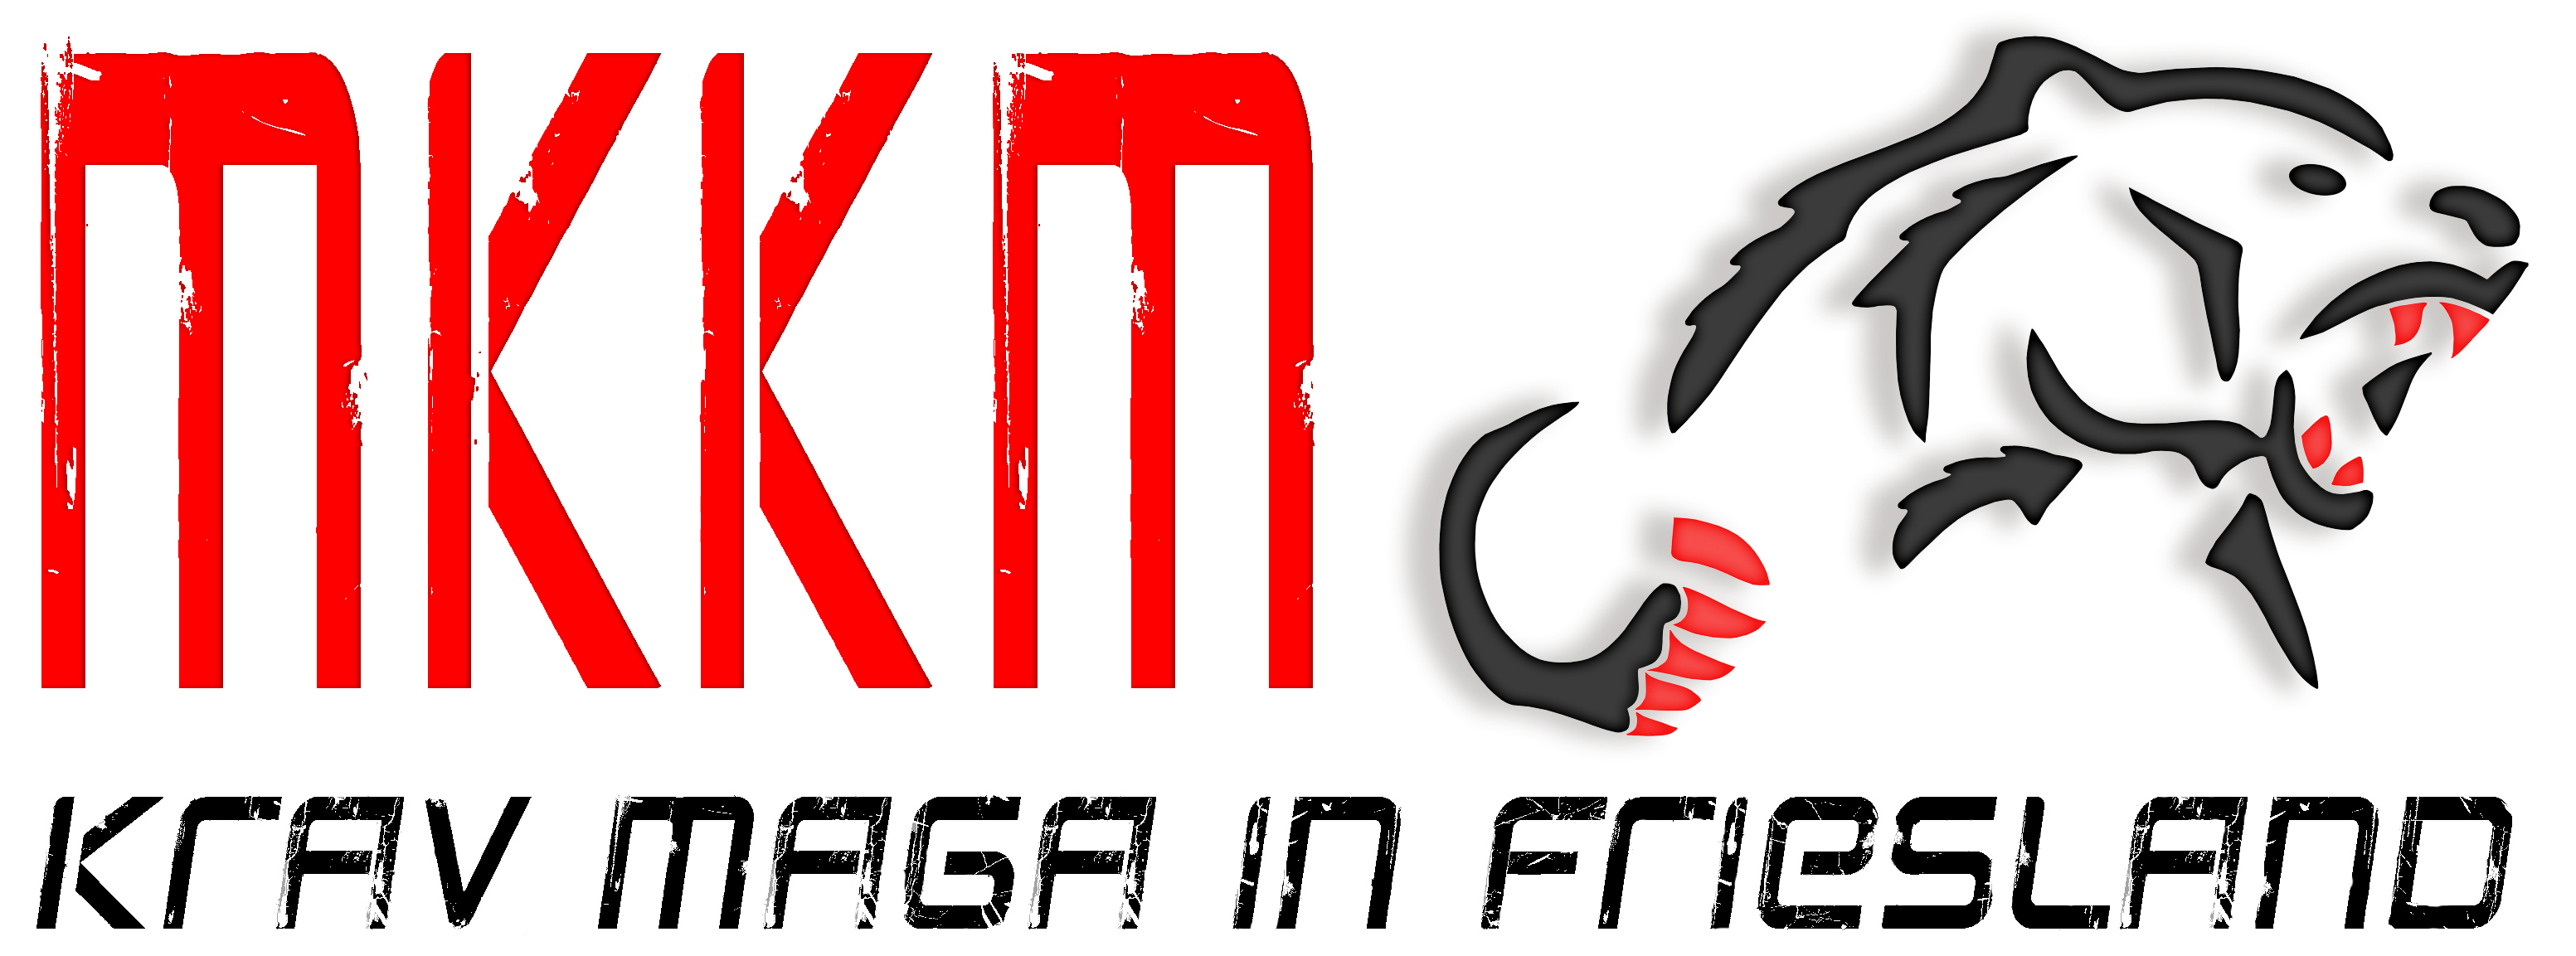 LOGO MKKM - Krav Maga in Friesland - BIG